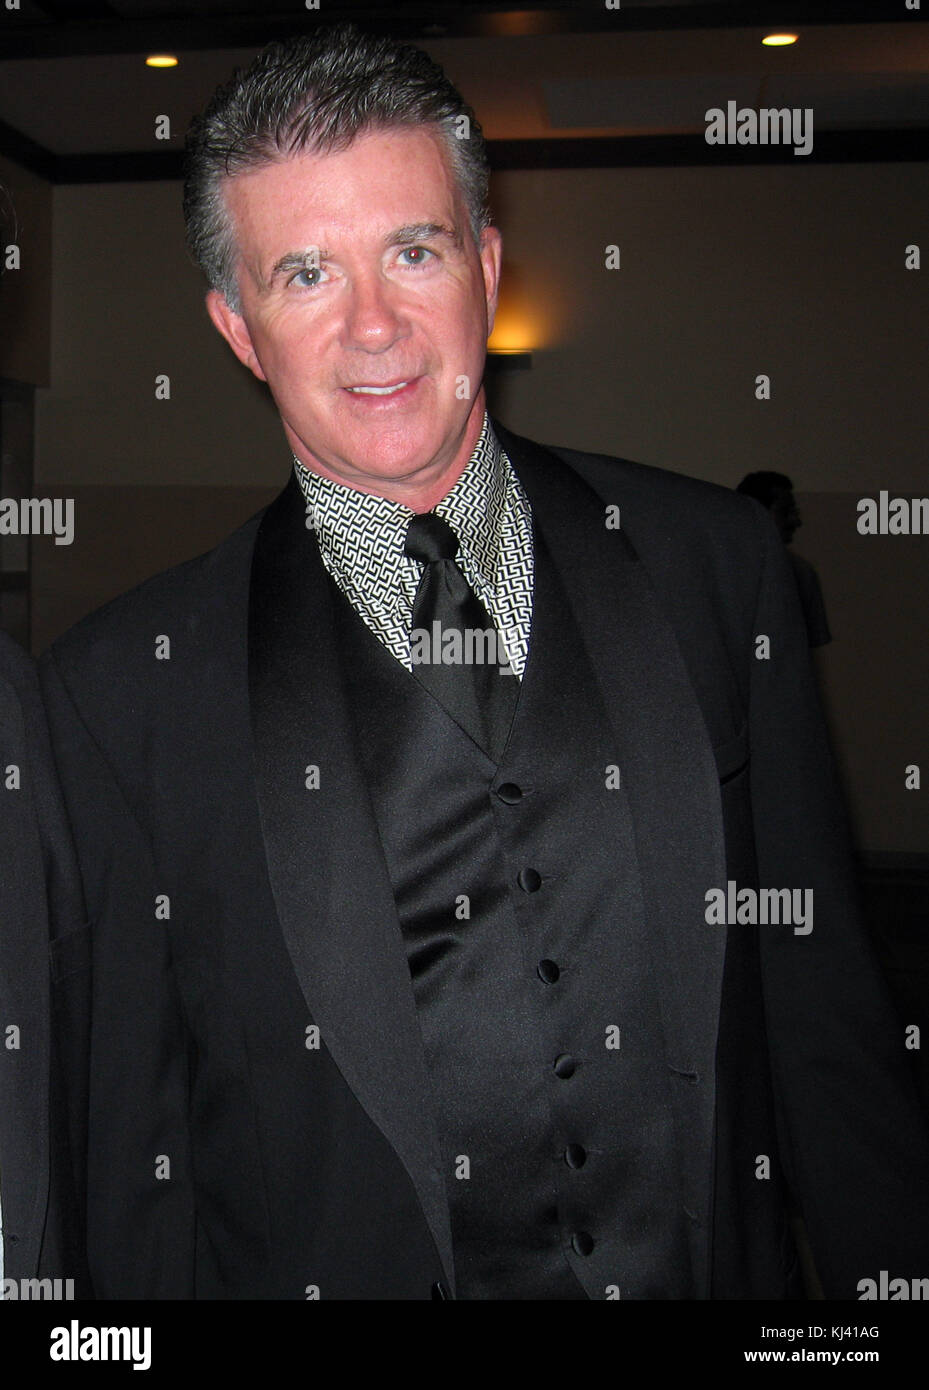 Boca Raton, FL - DECEMBER 03, 2005 : Alan Thicke at the Boca Resort.  People; Alan Thicke   Must call if interested - Stock Image